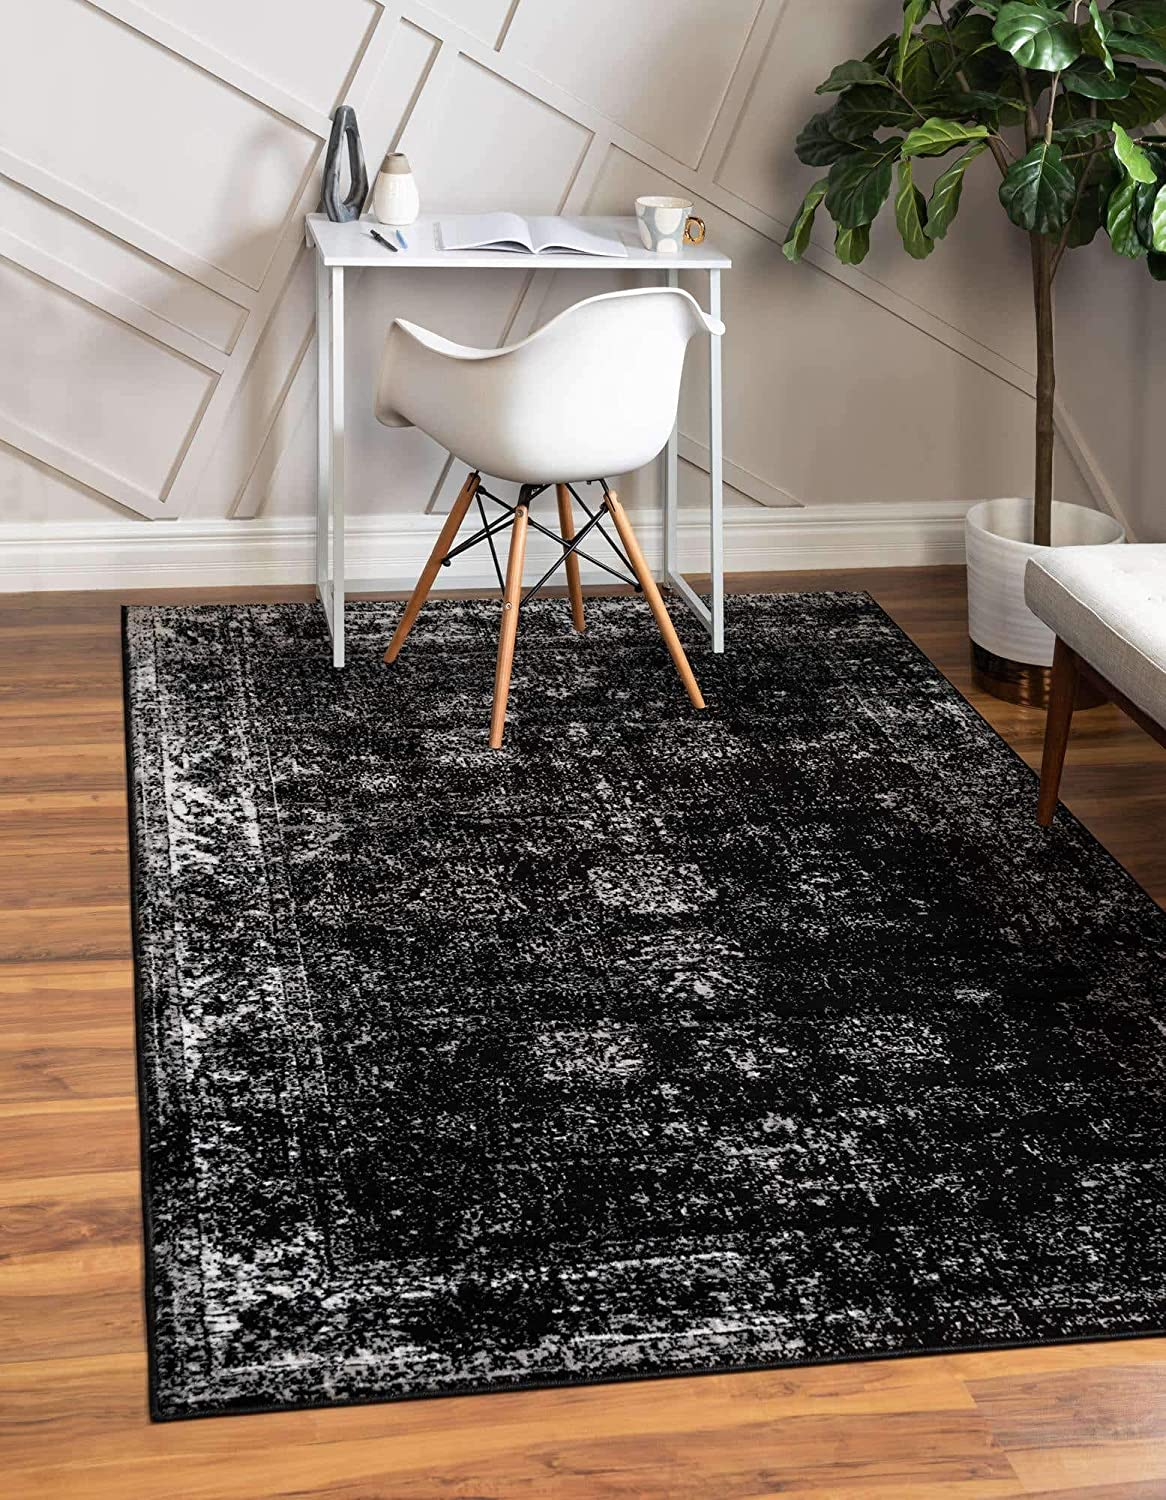 Unique Loom Sofia Traditional Area Rug, 6' 0 x 9' 0, Black